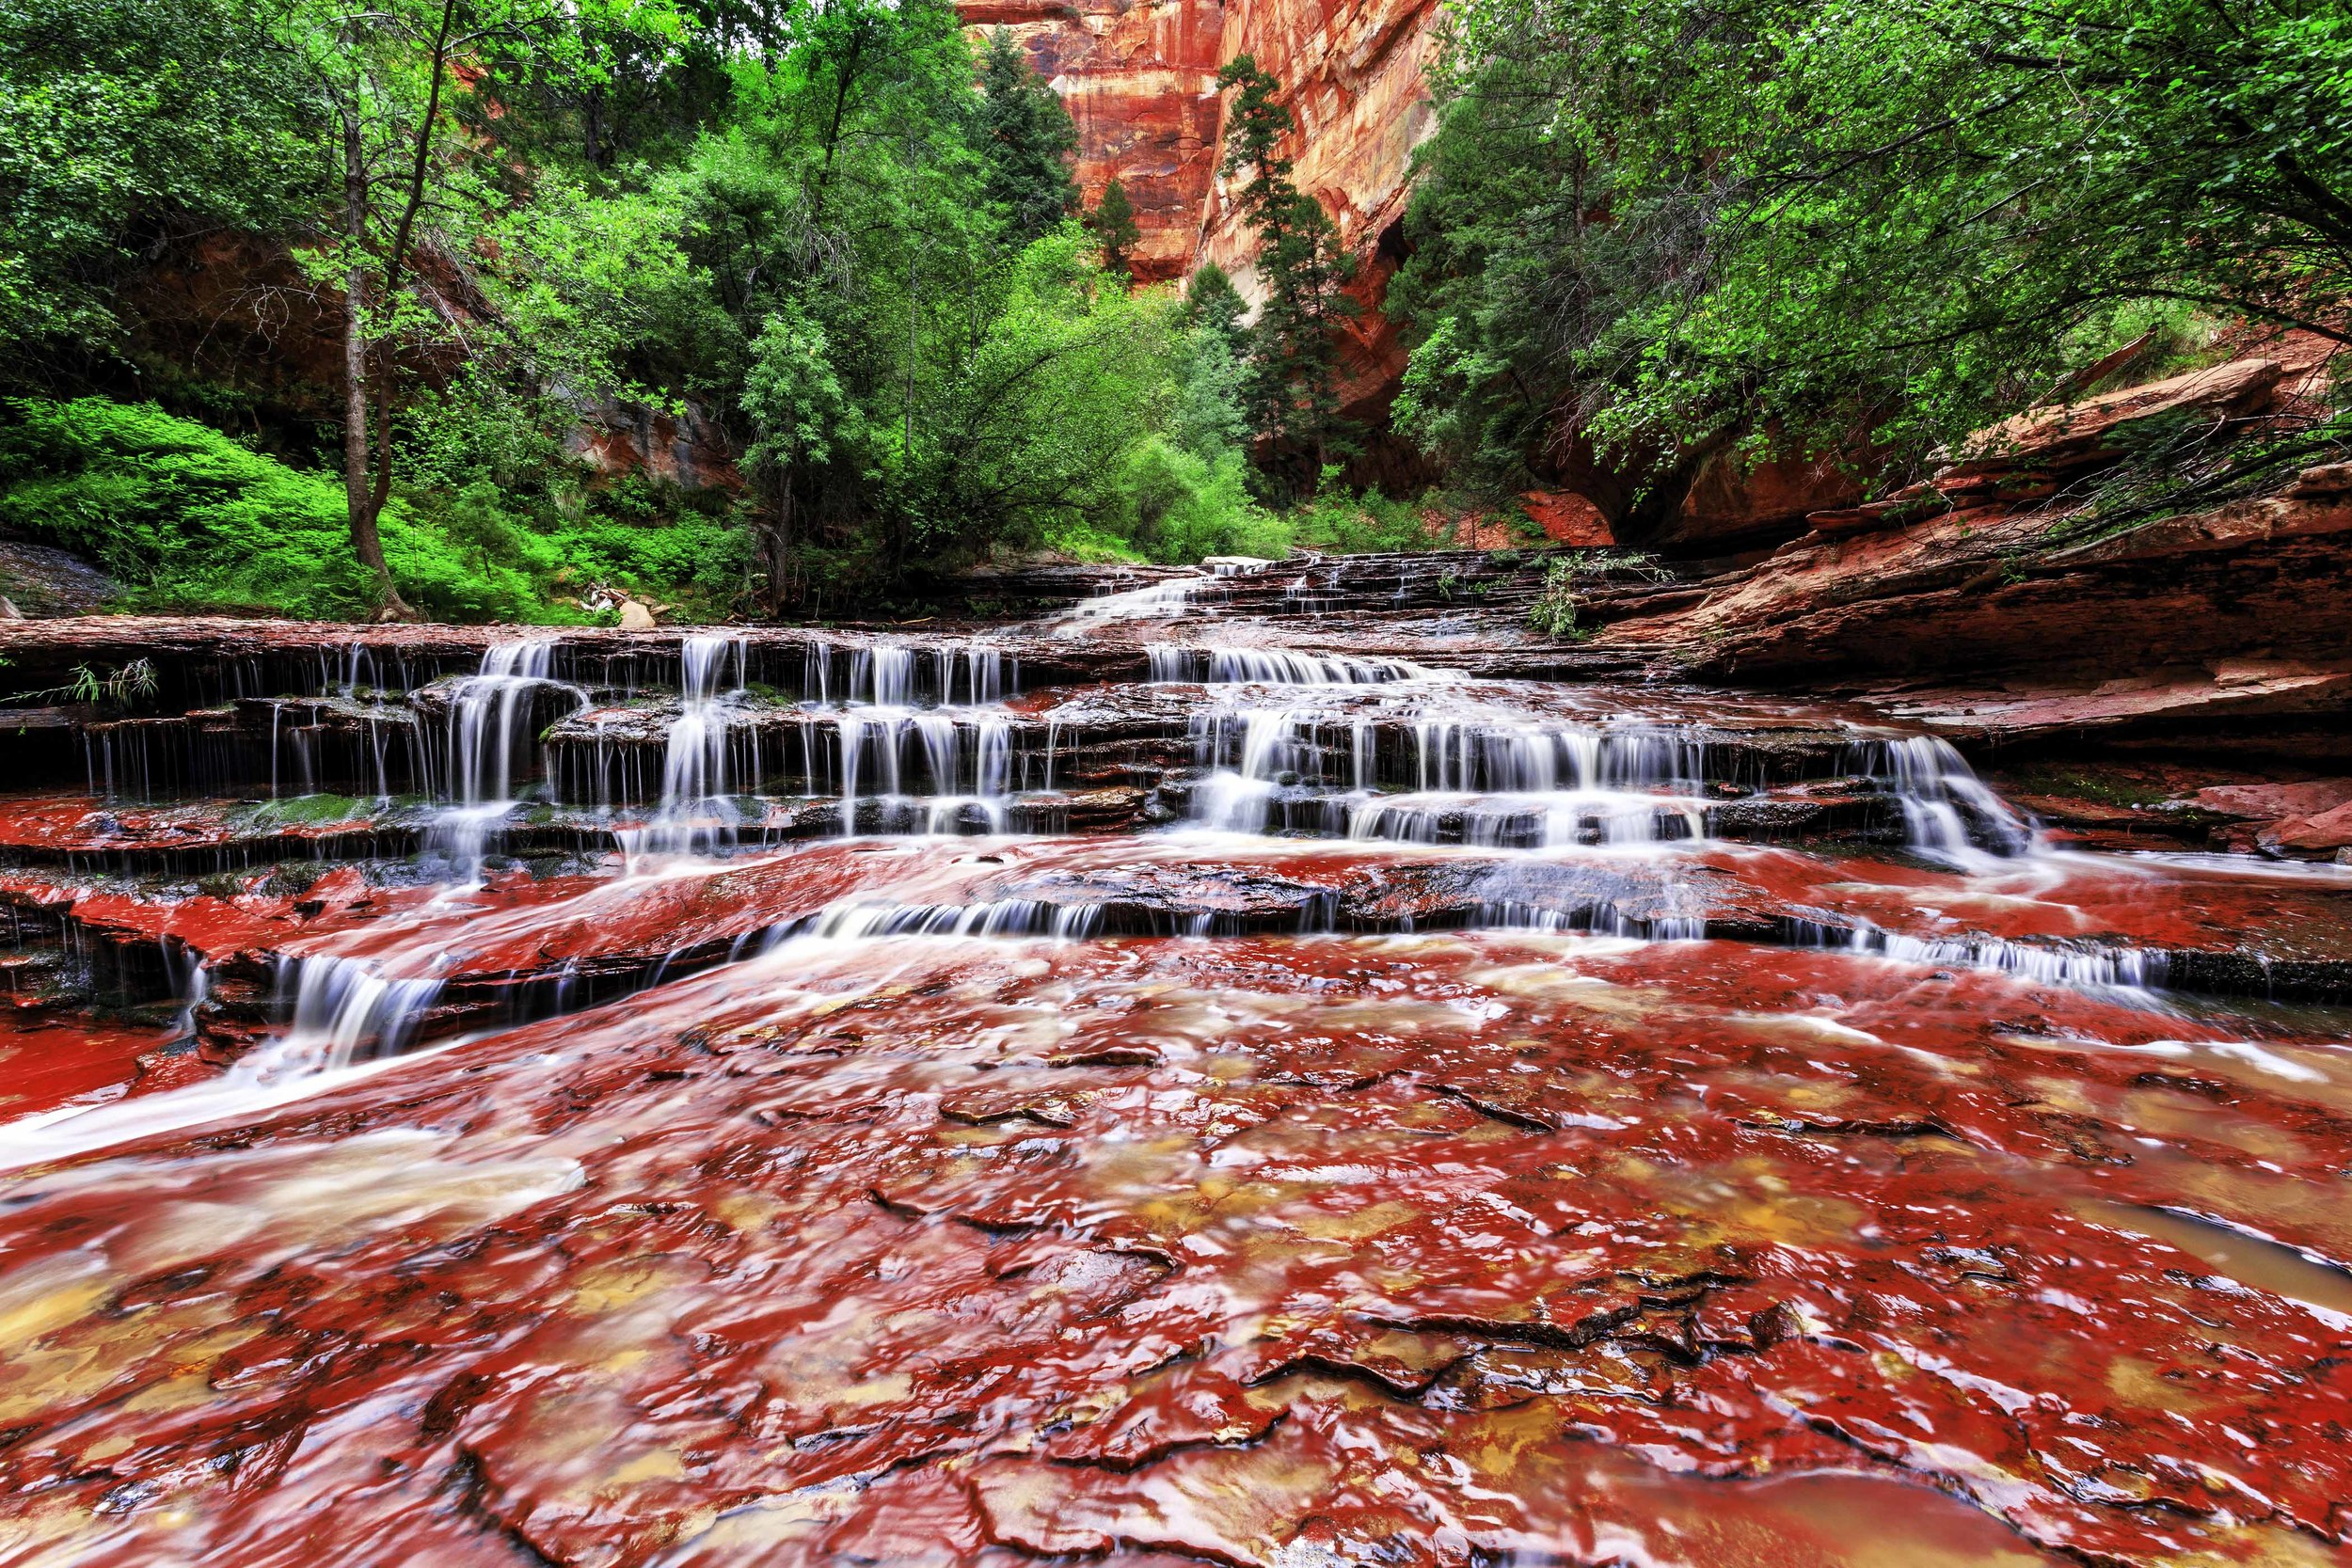 This broad waterfall marks the exit of the famous Subway canyon in Zion National Park.